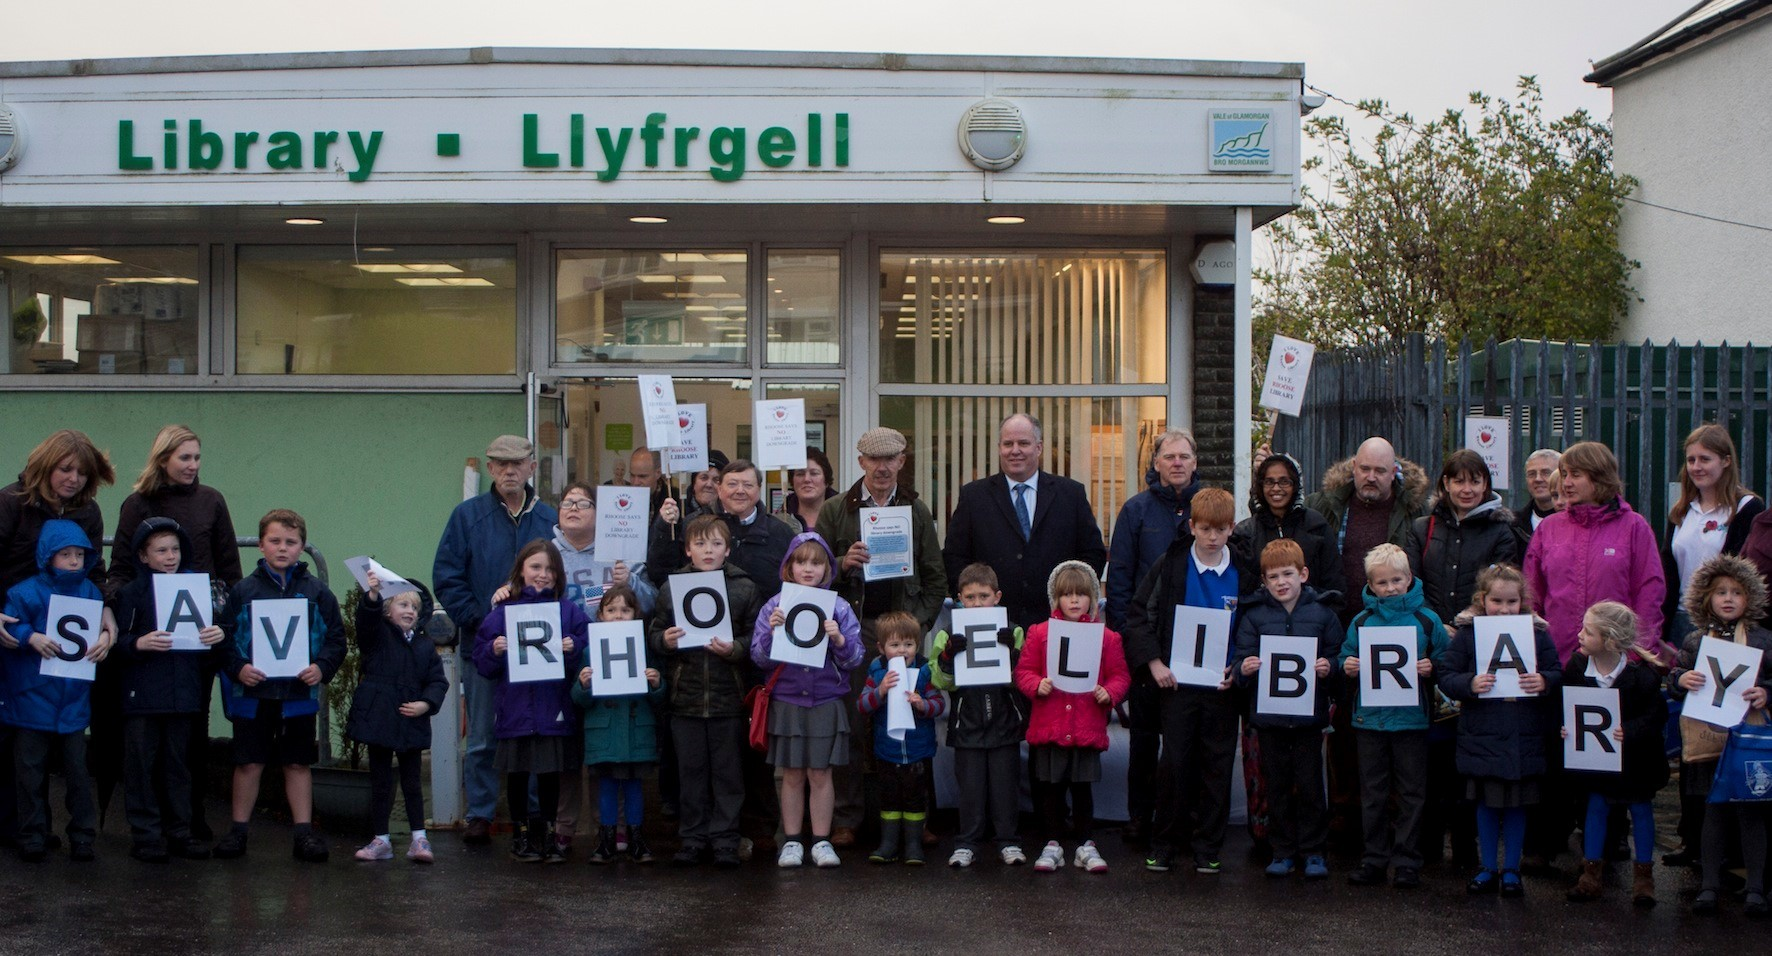 Rhoose library campaigners are going to the High Court to oppose library closure